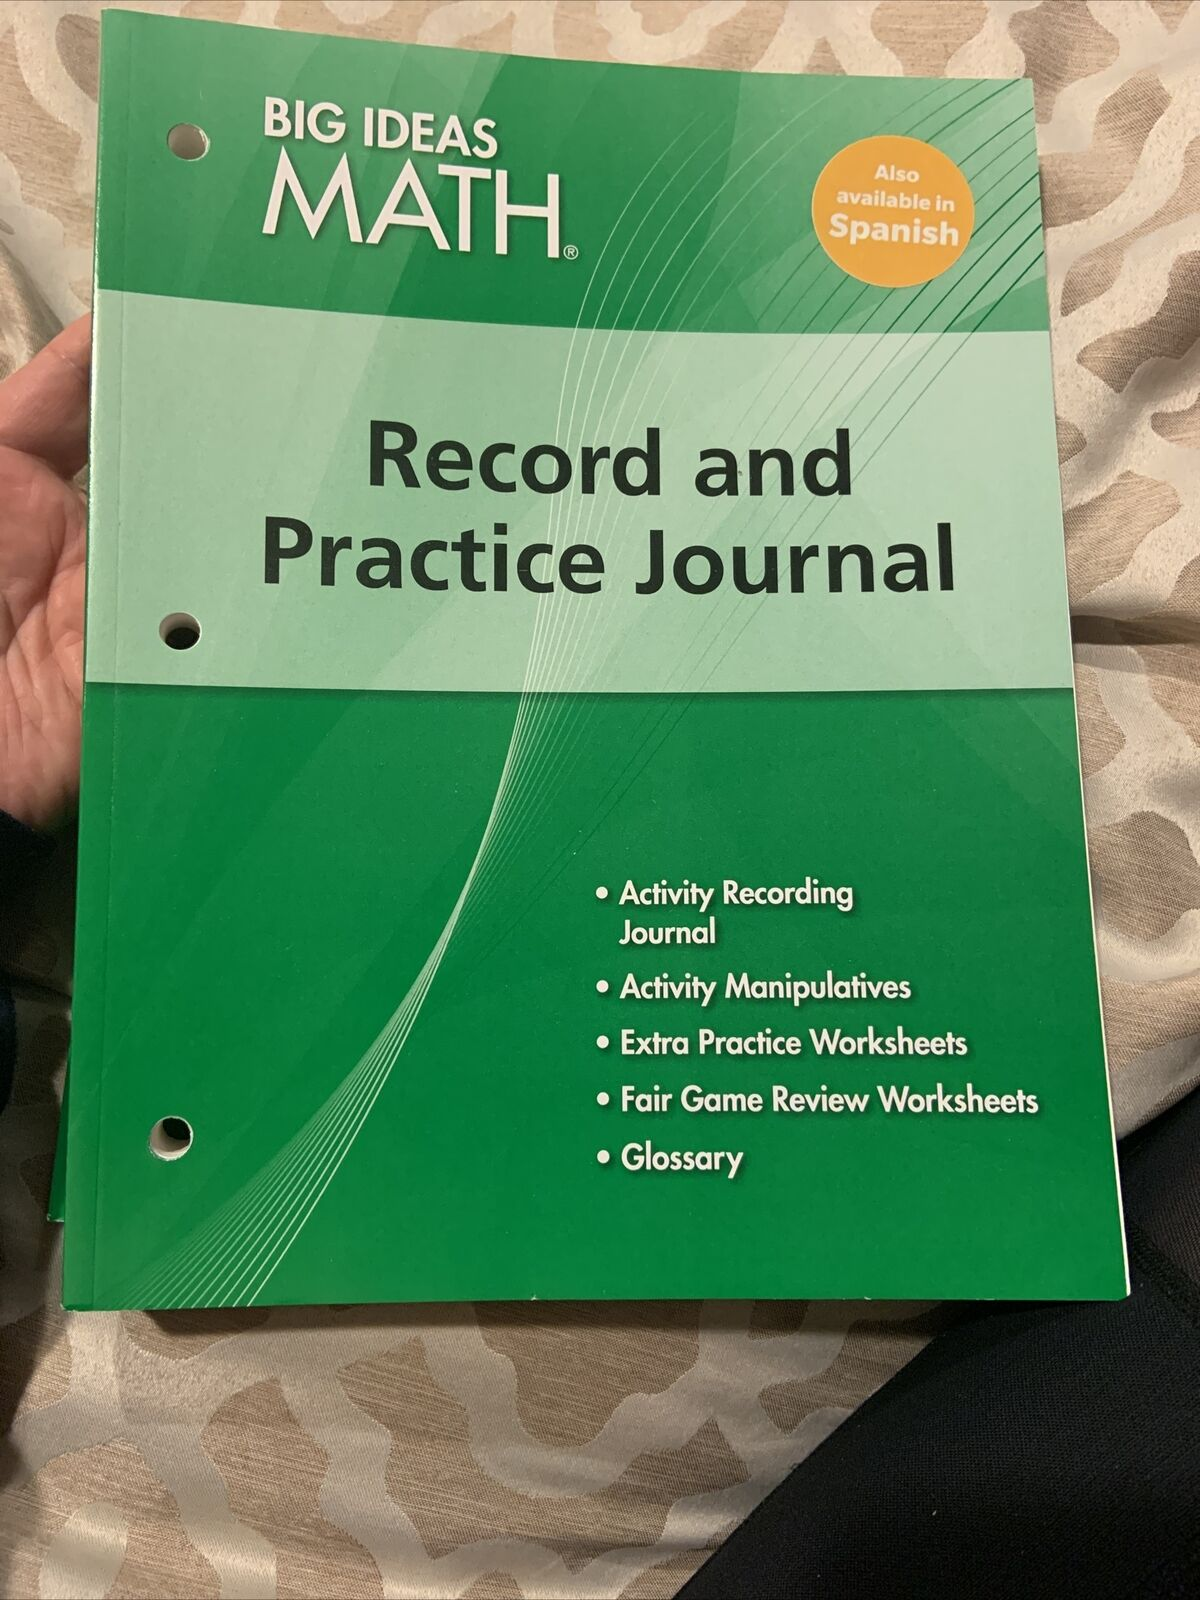 hight resolution of Big Ideas Math Record \u0026 Practice Journal Grade 6 Green Common Core  9781608404605 for sale online   eBay